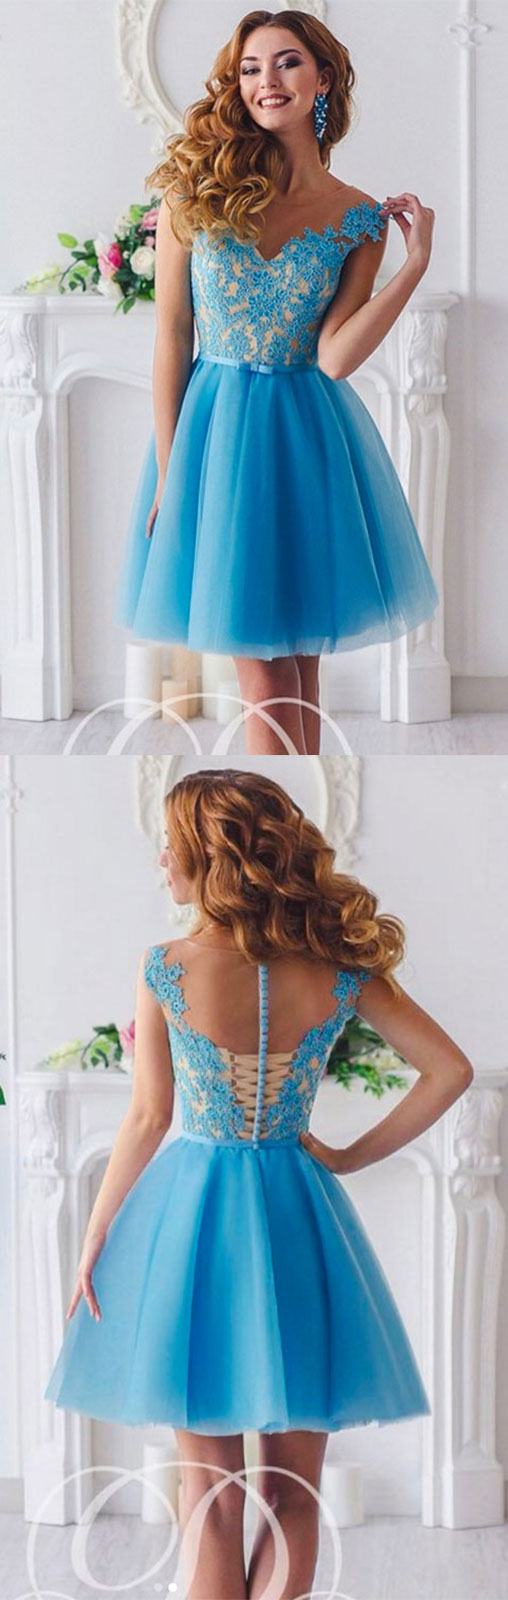 Cute blue lace tulle short prom dress cute homecoming dress